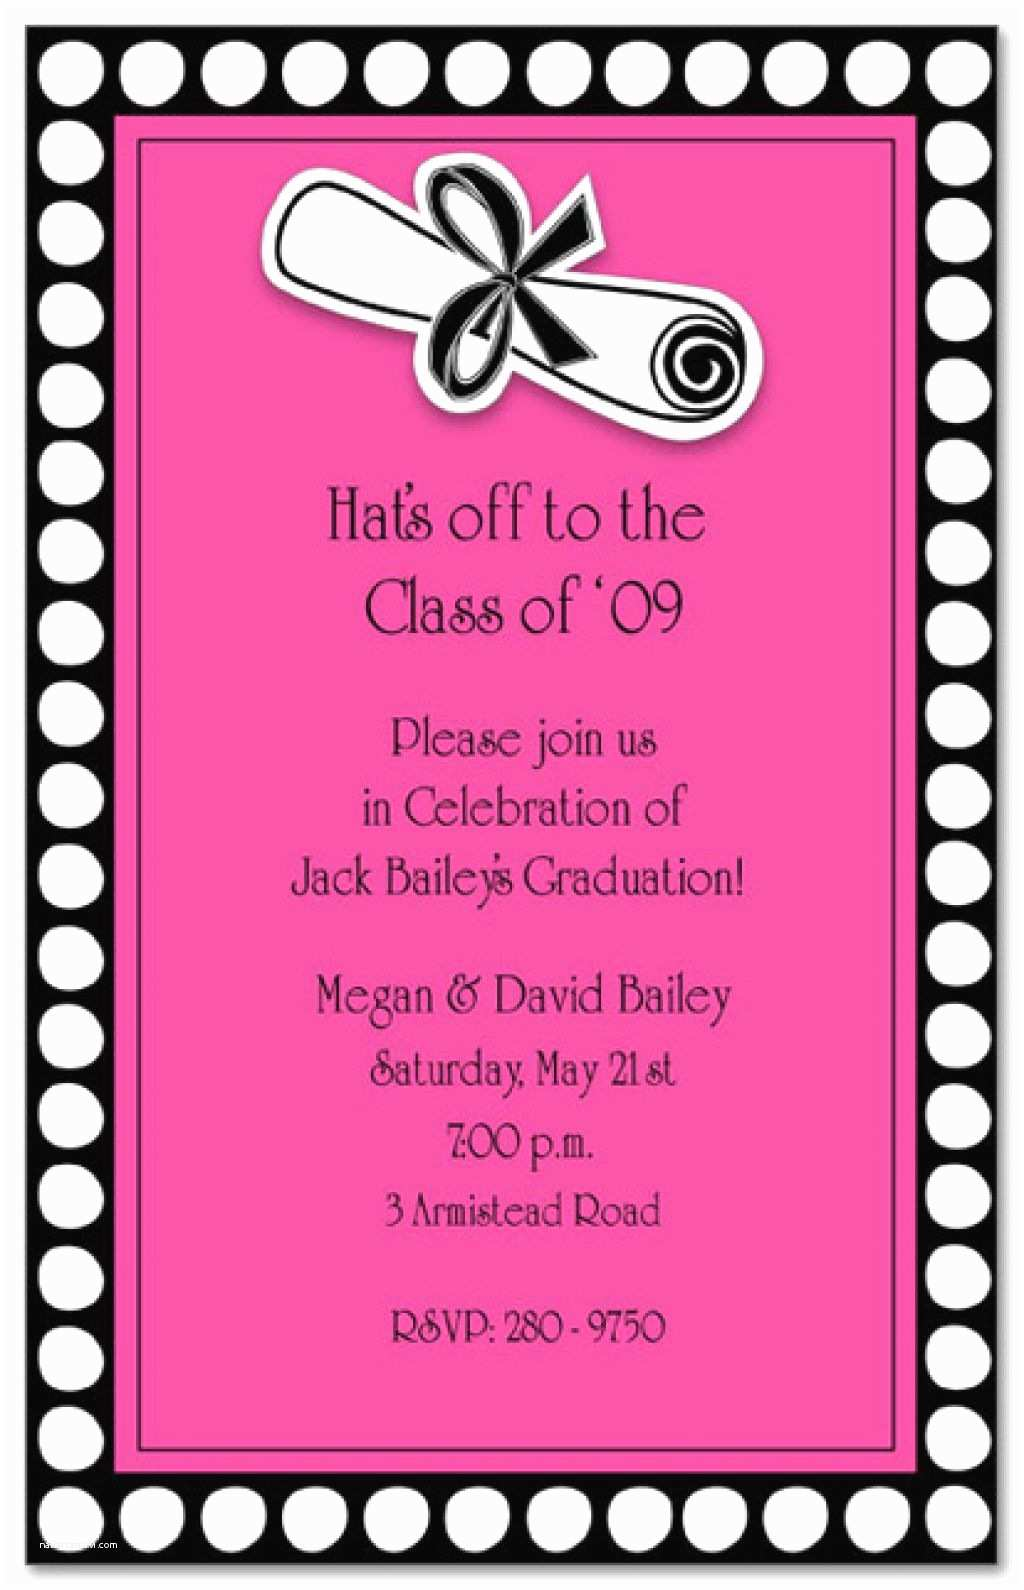 Party Invitation Wording Invitation Wording for Hat Party Invitation